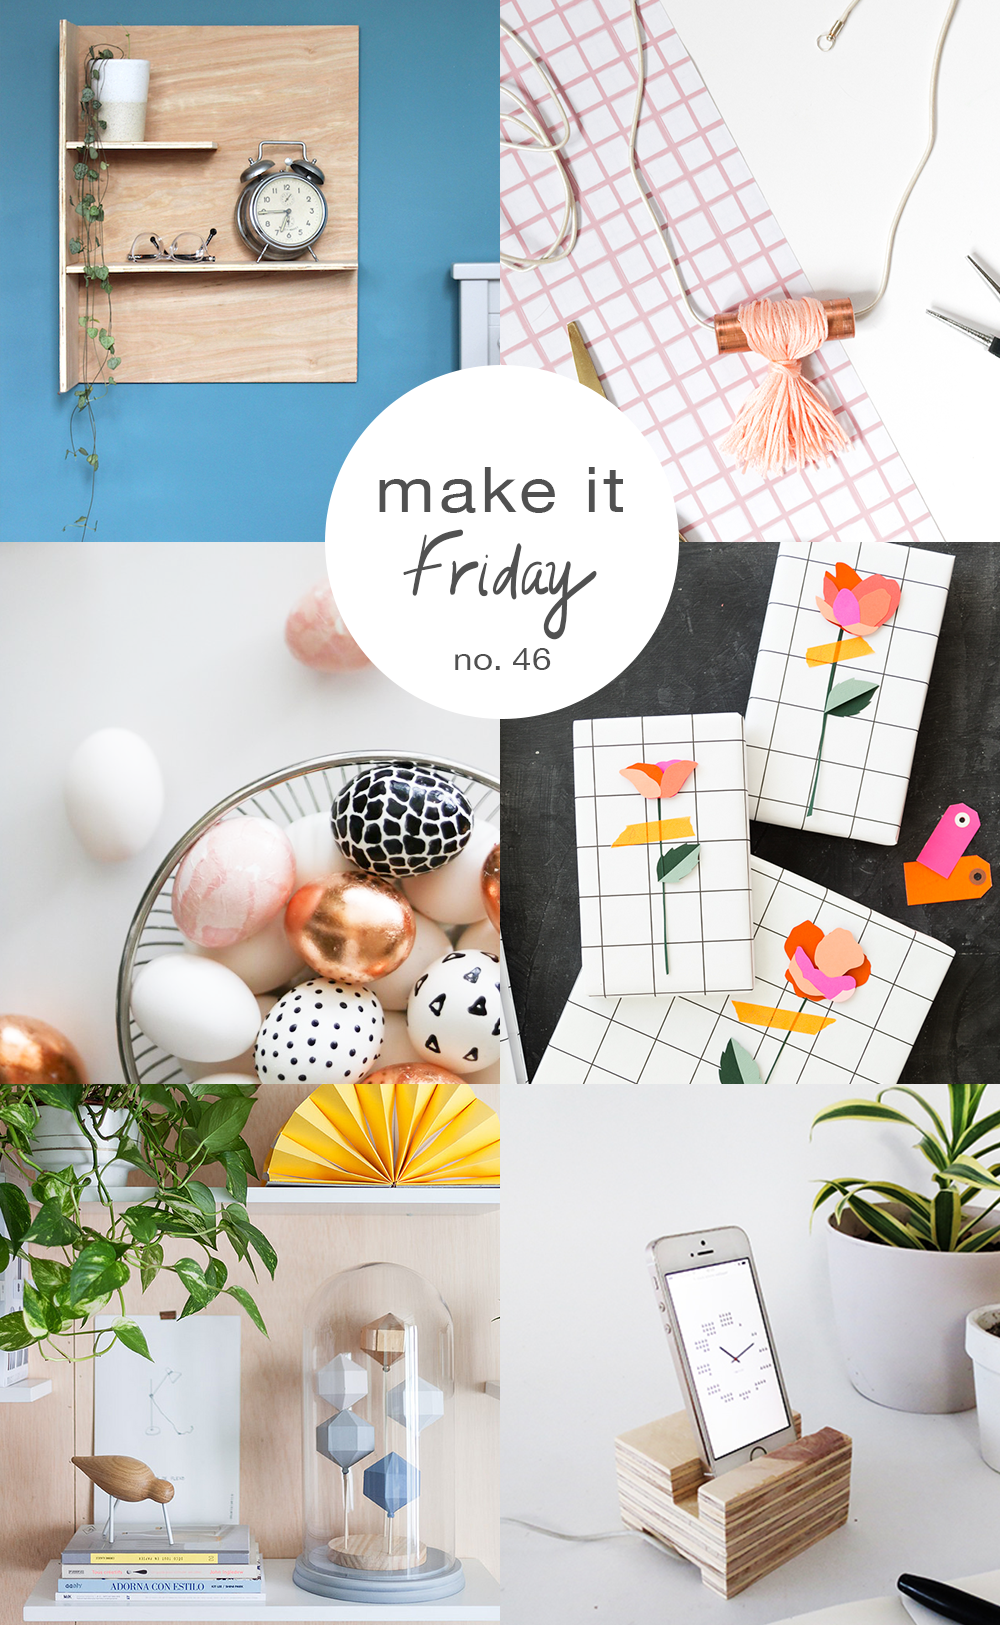 Make it Friday: Plywood and Pastels // DIY ideas to make this weekend via @idlehandsawake